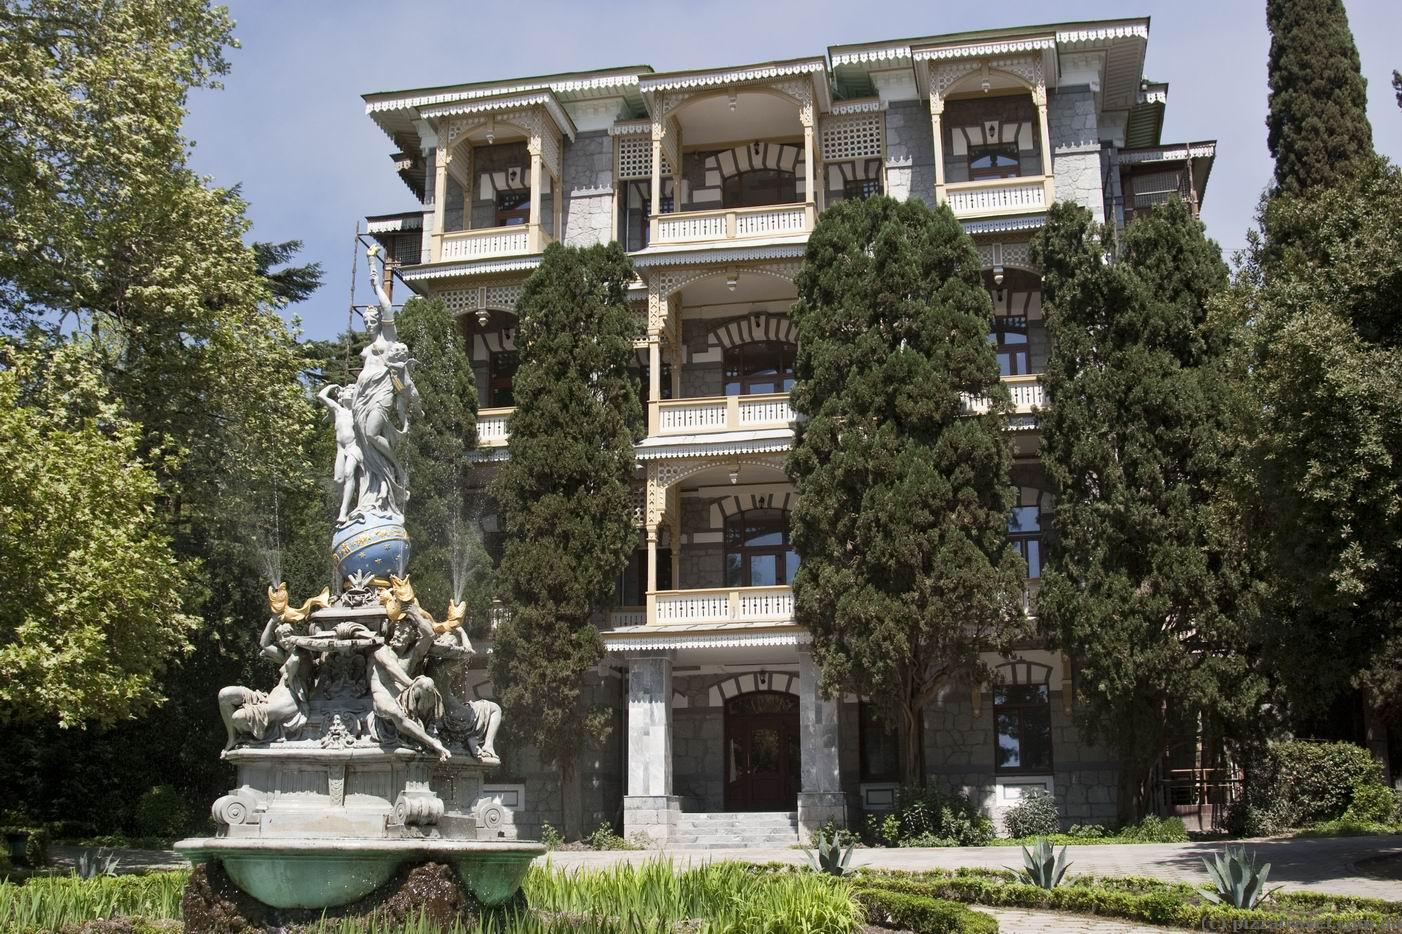 Hotels Gurzuf: a selection of sites